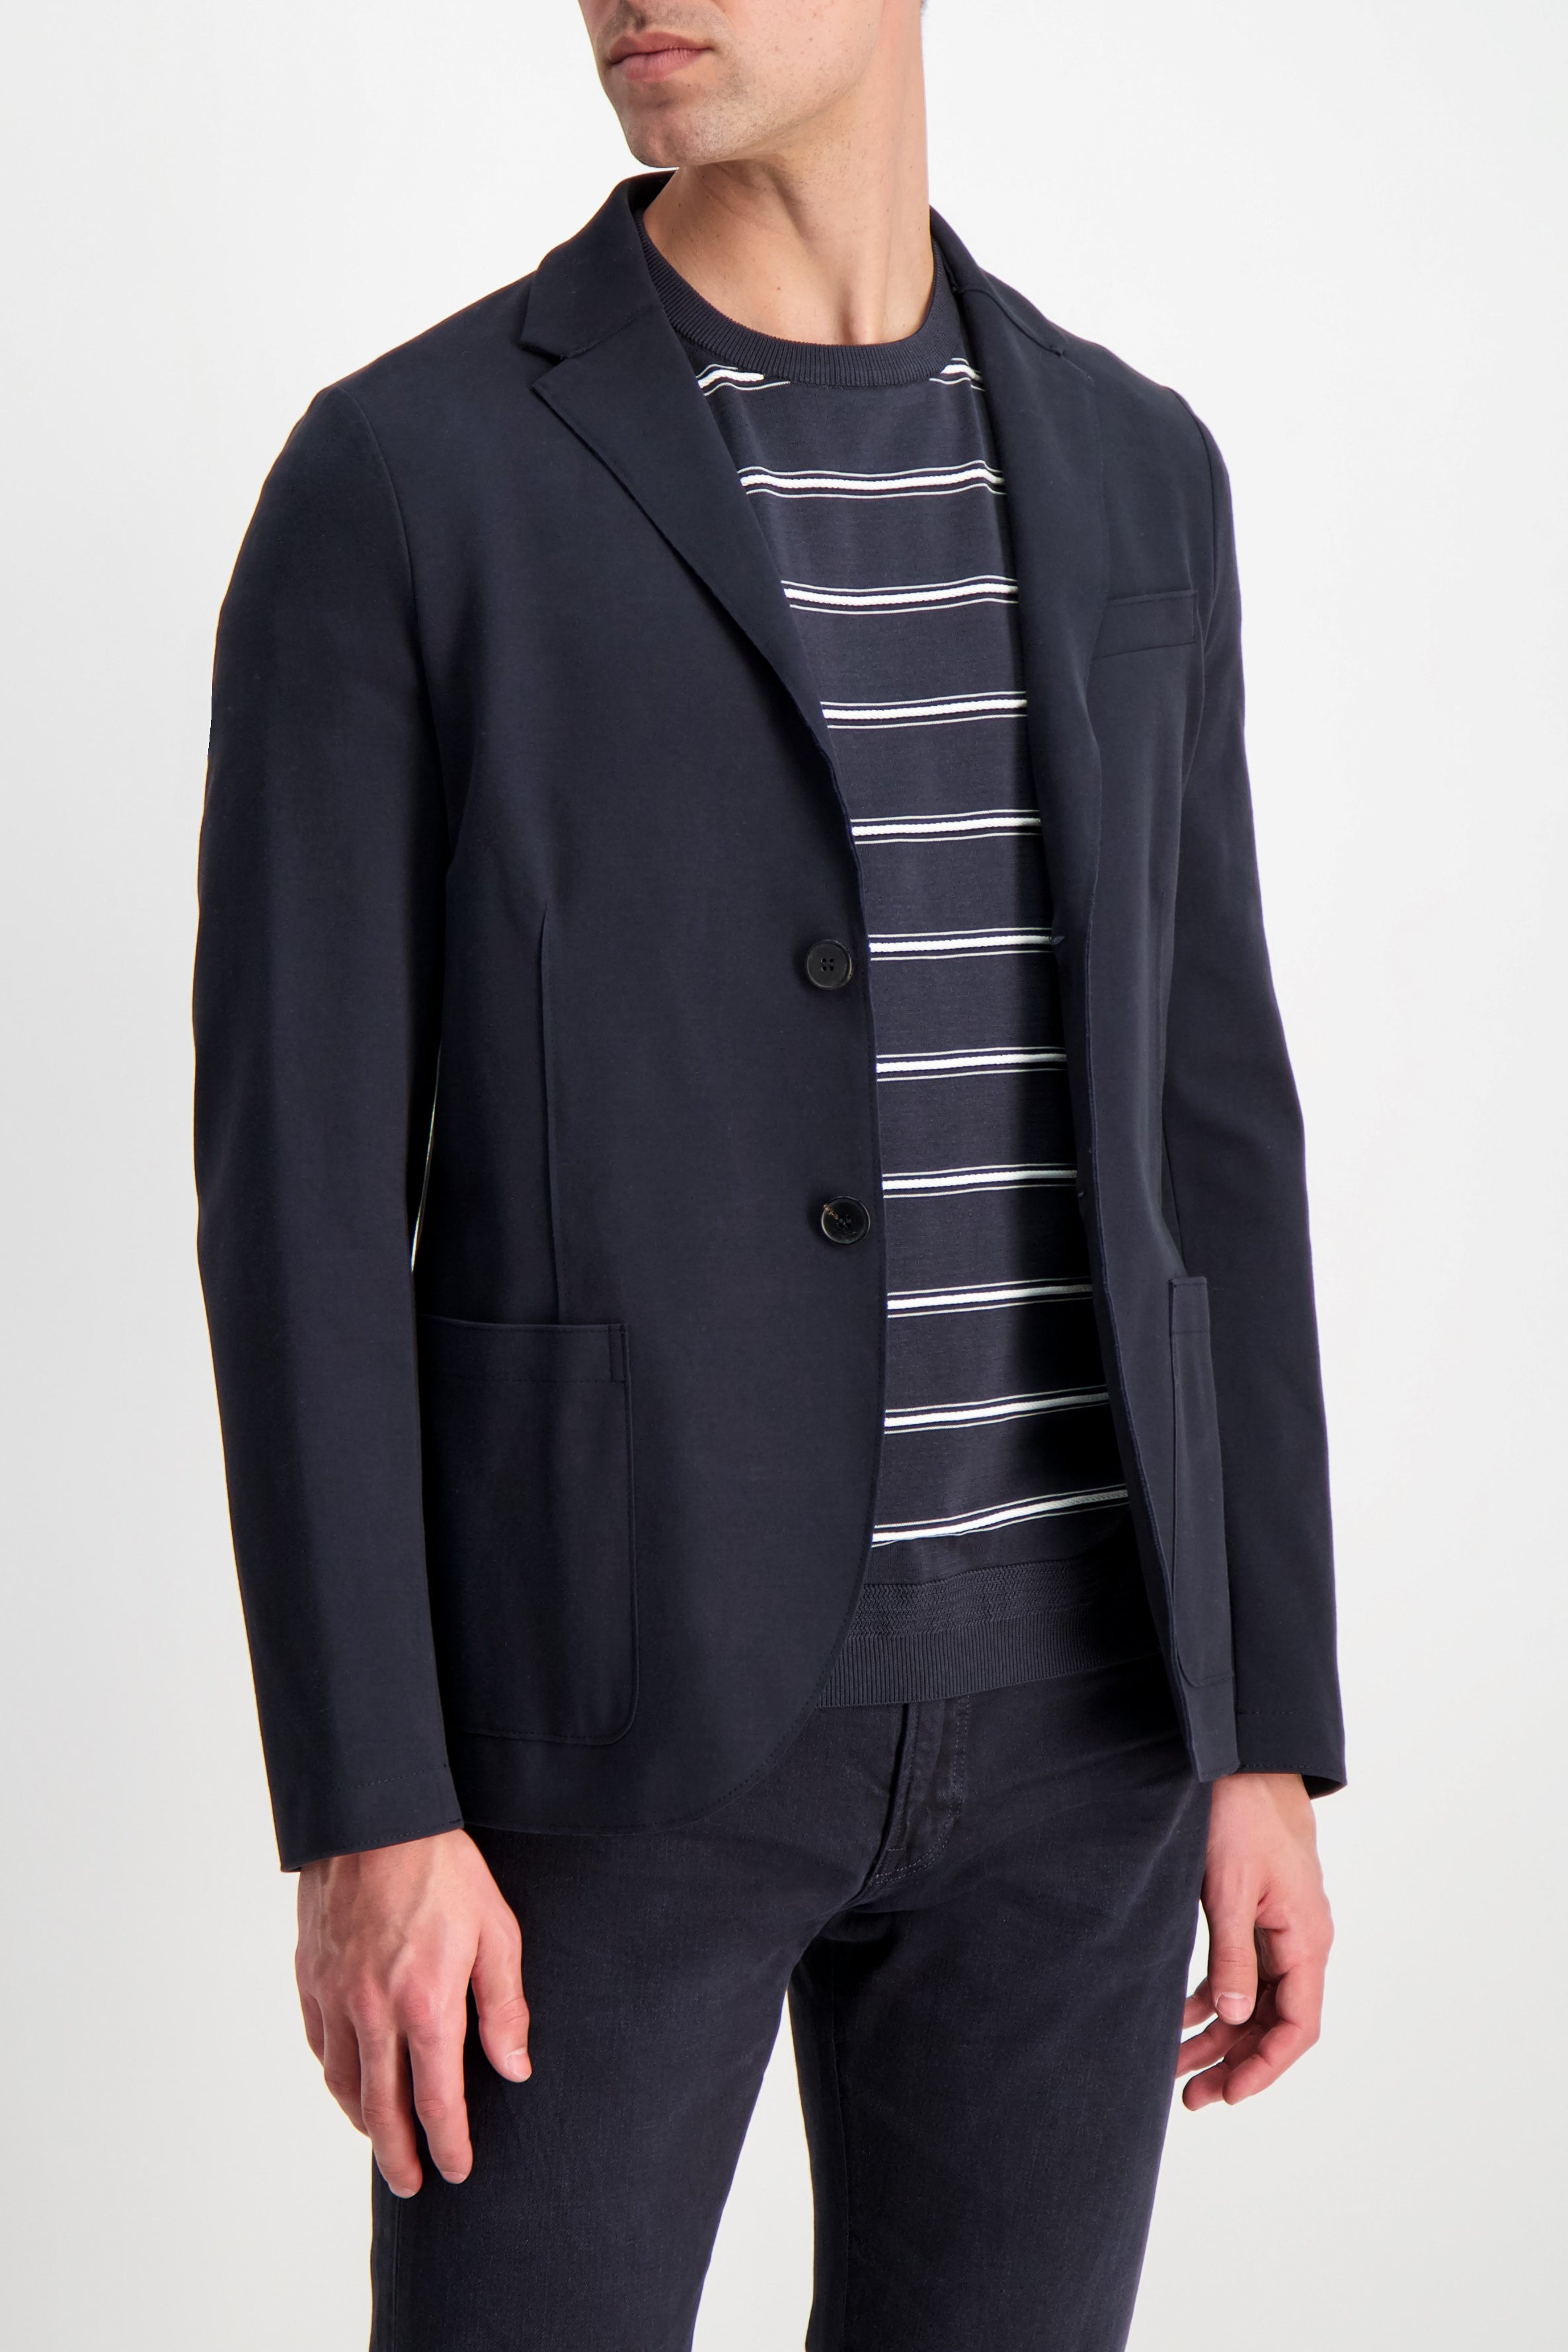 Front crop image of model wearing Harris Wharf London Men's Blazer Peached Cotton Blue